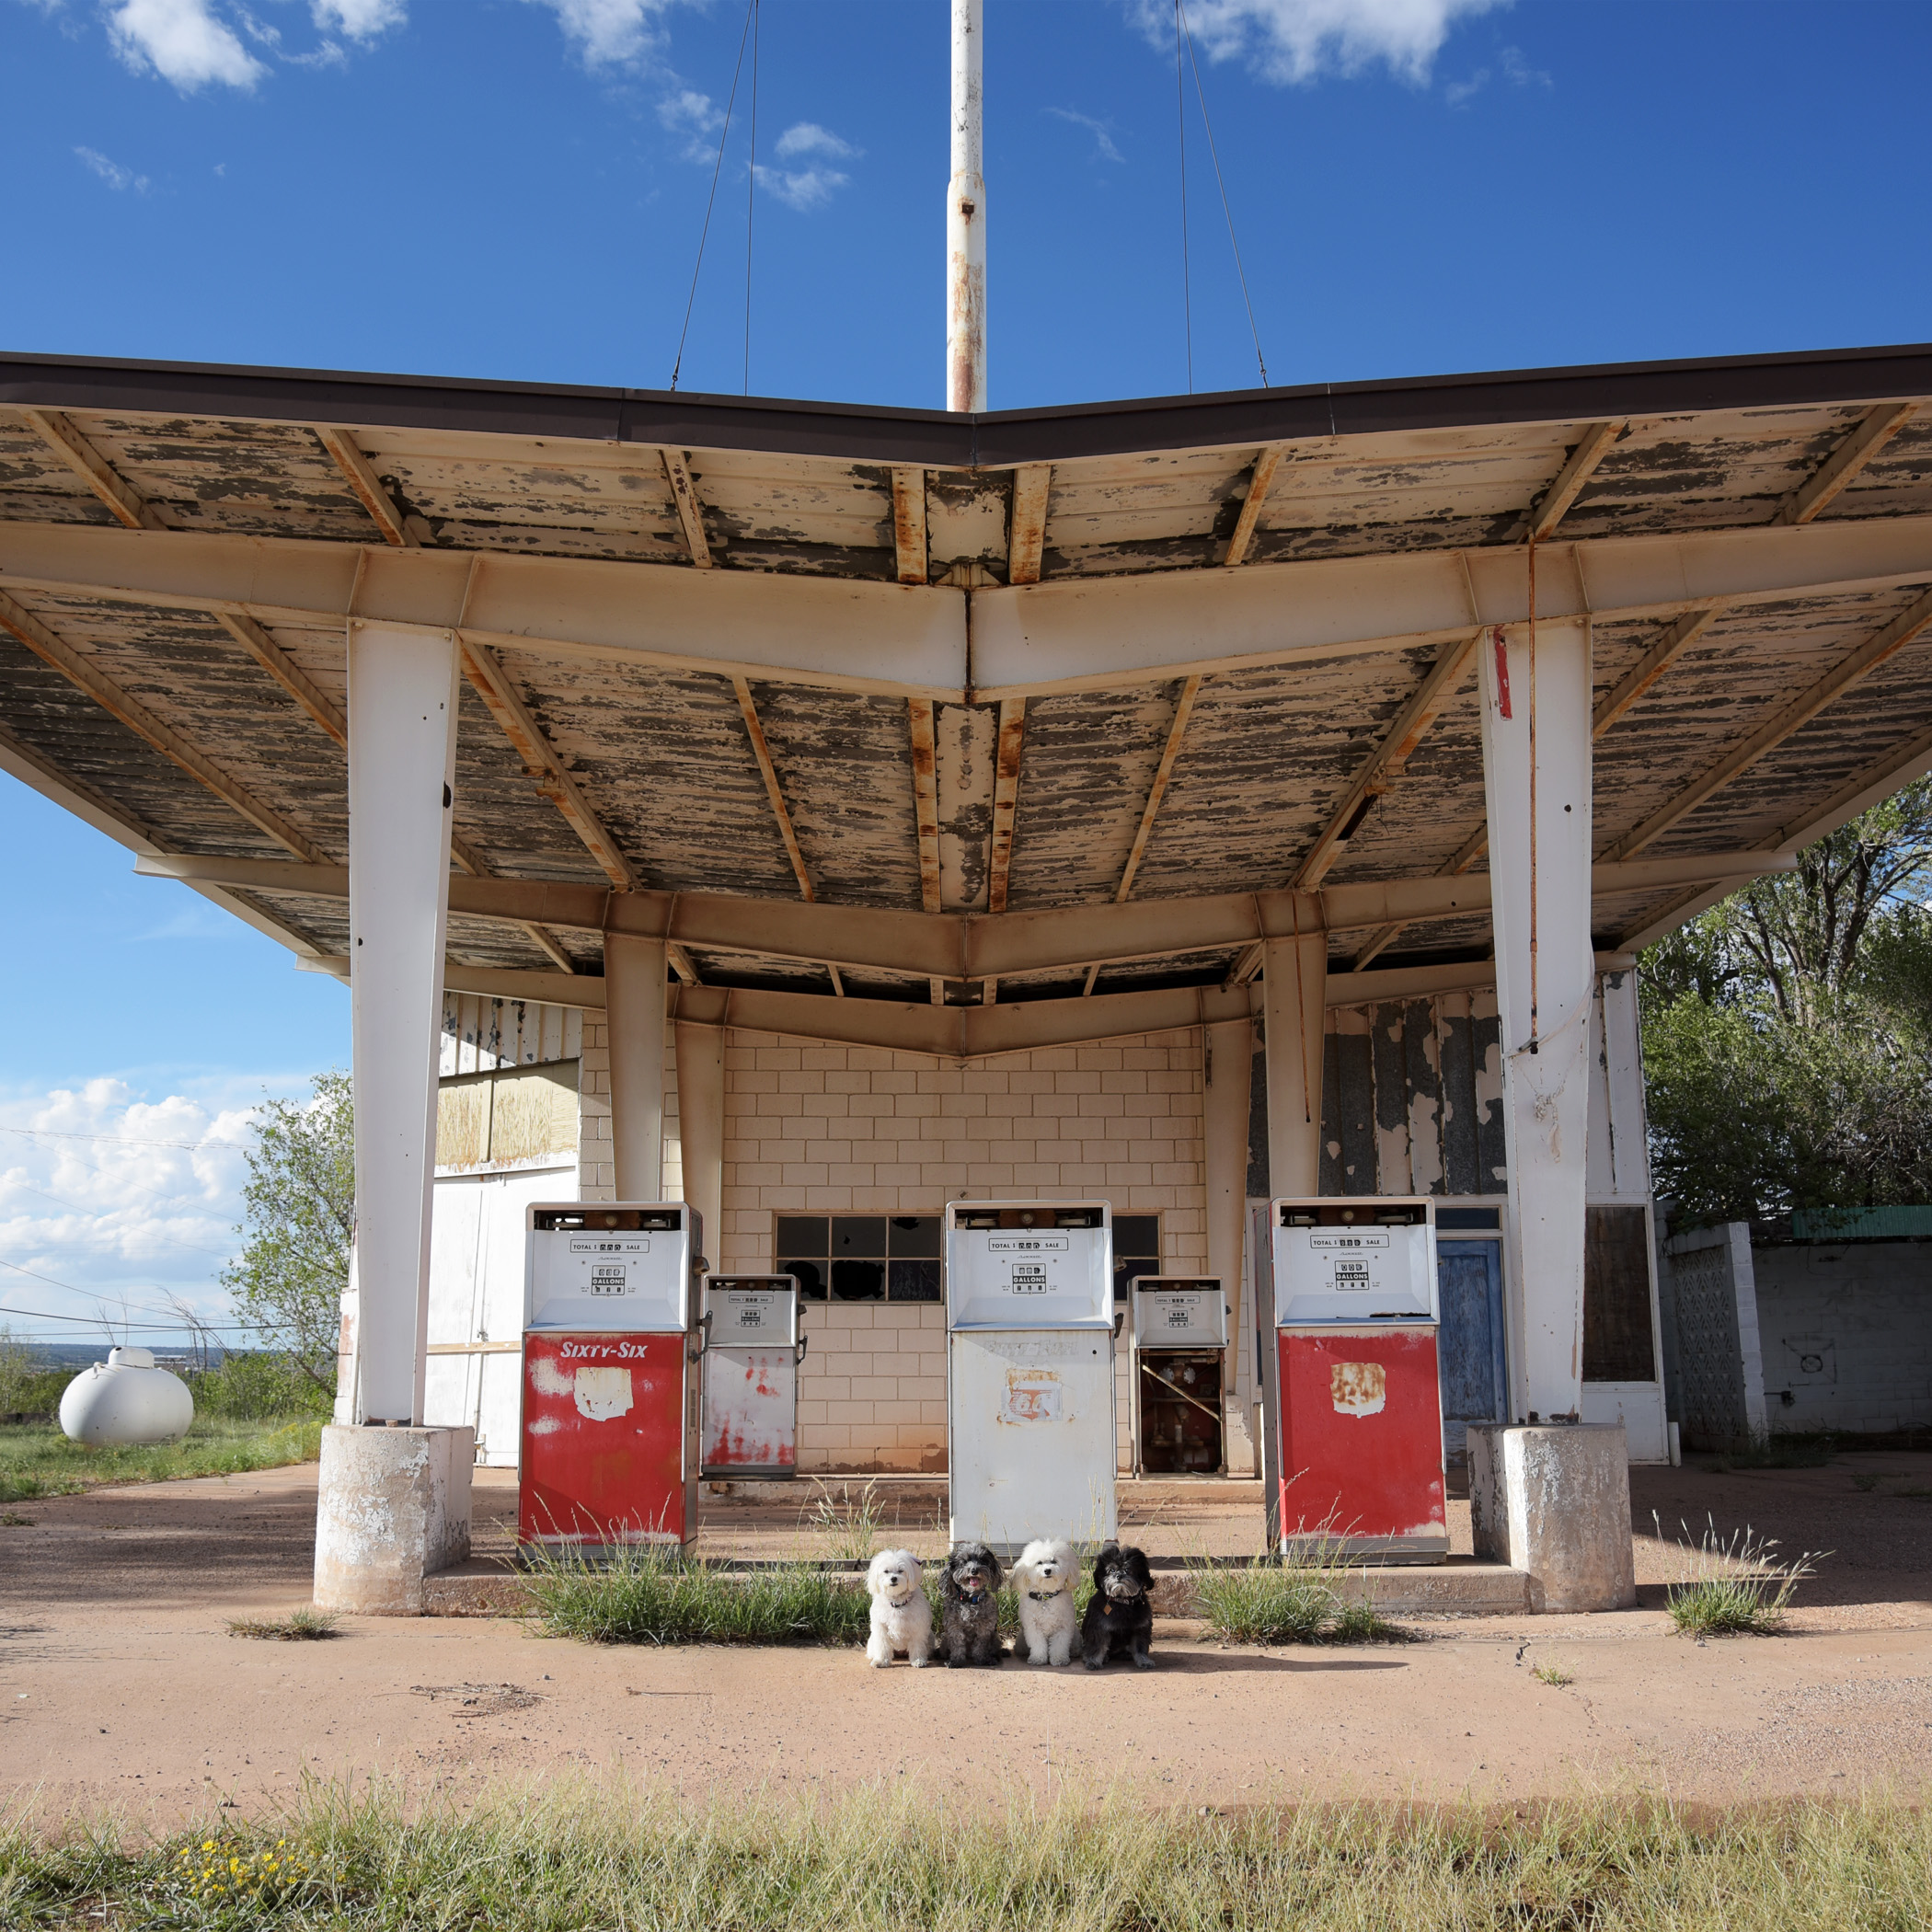 Santa Rosa, New Mexico on the Old Route 66…not sure Daddy's going to have success filling up at this gas station, but it would be a cheap fill up!